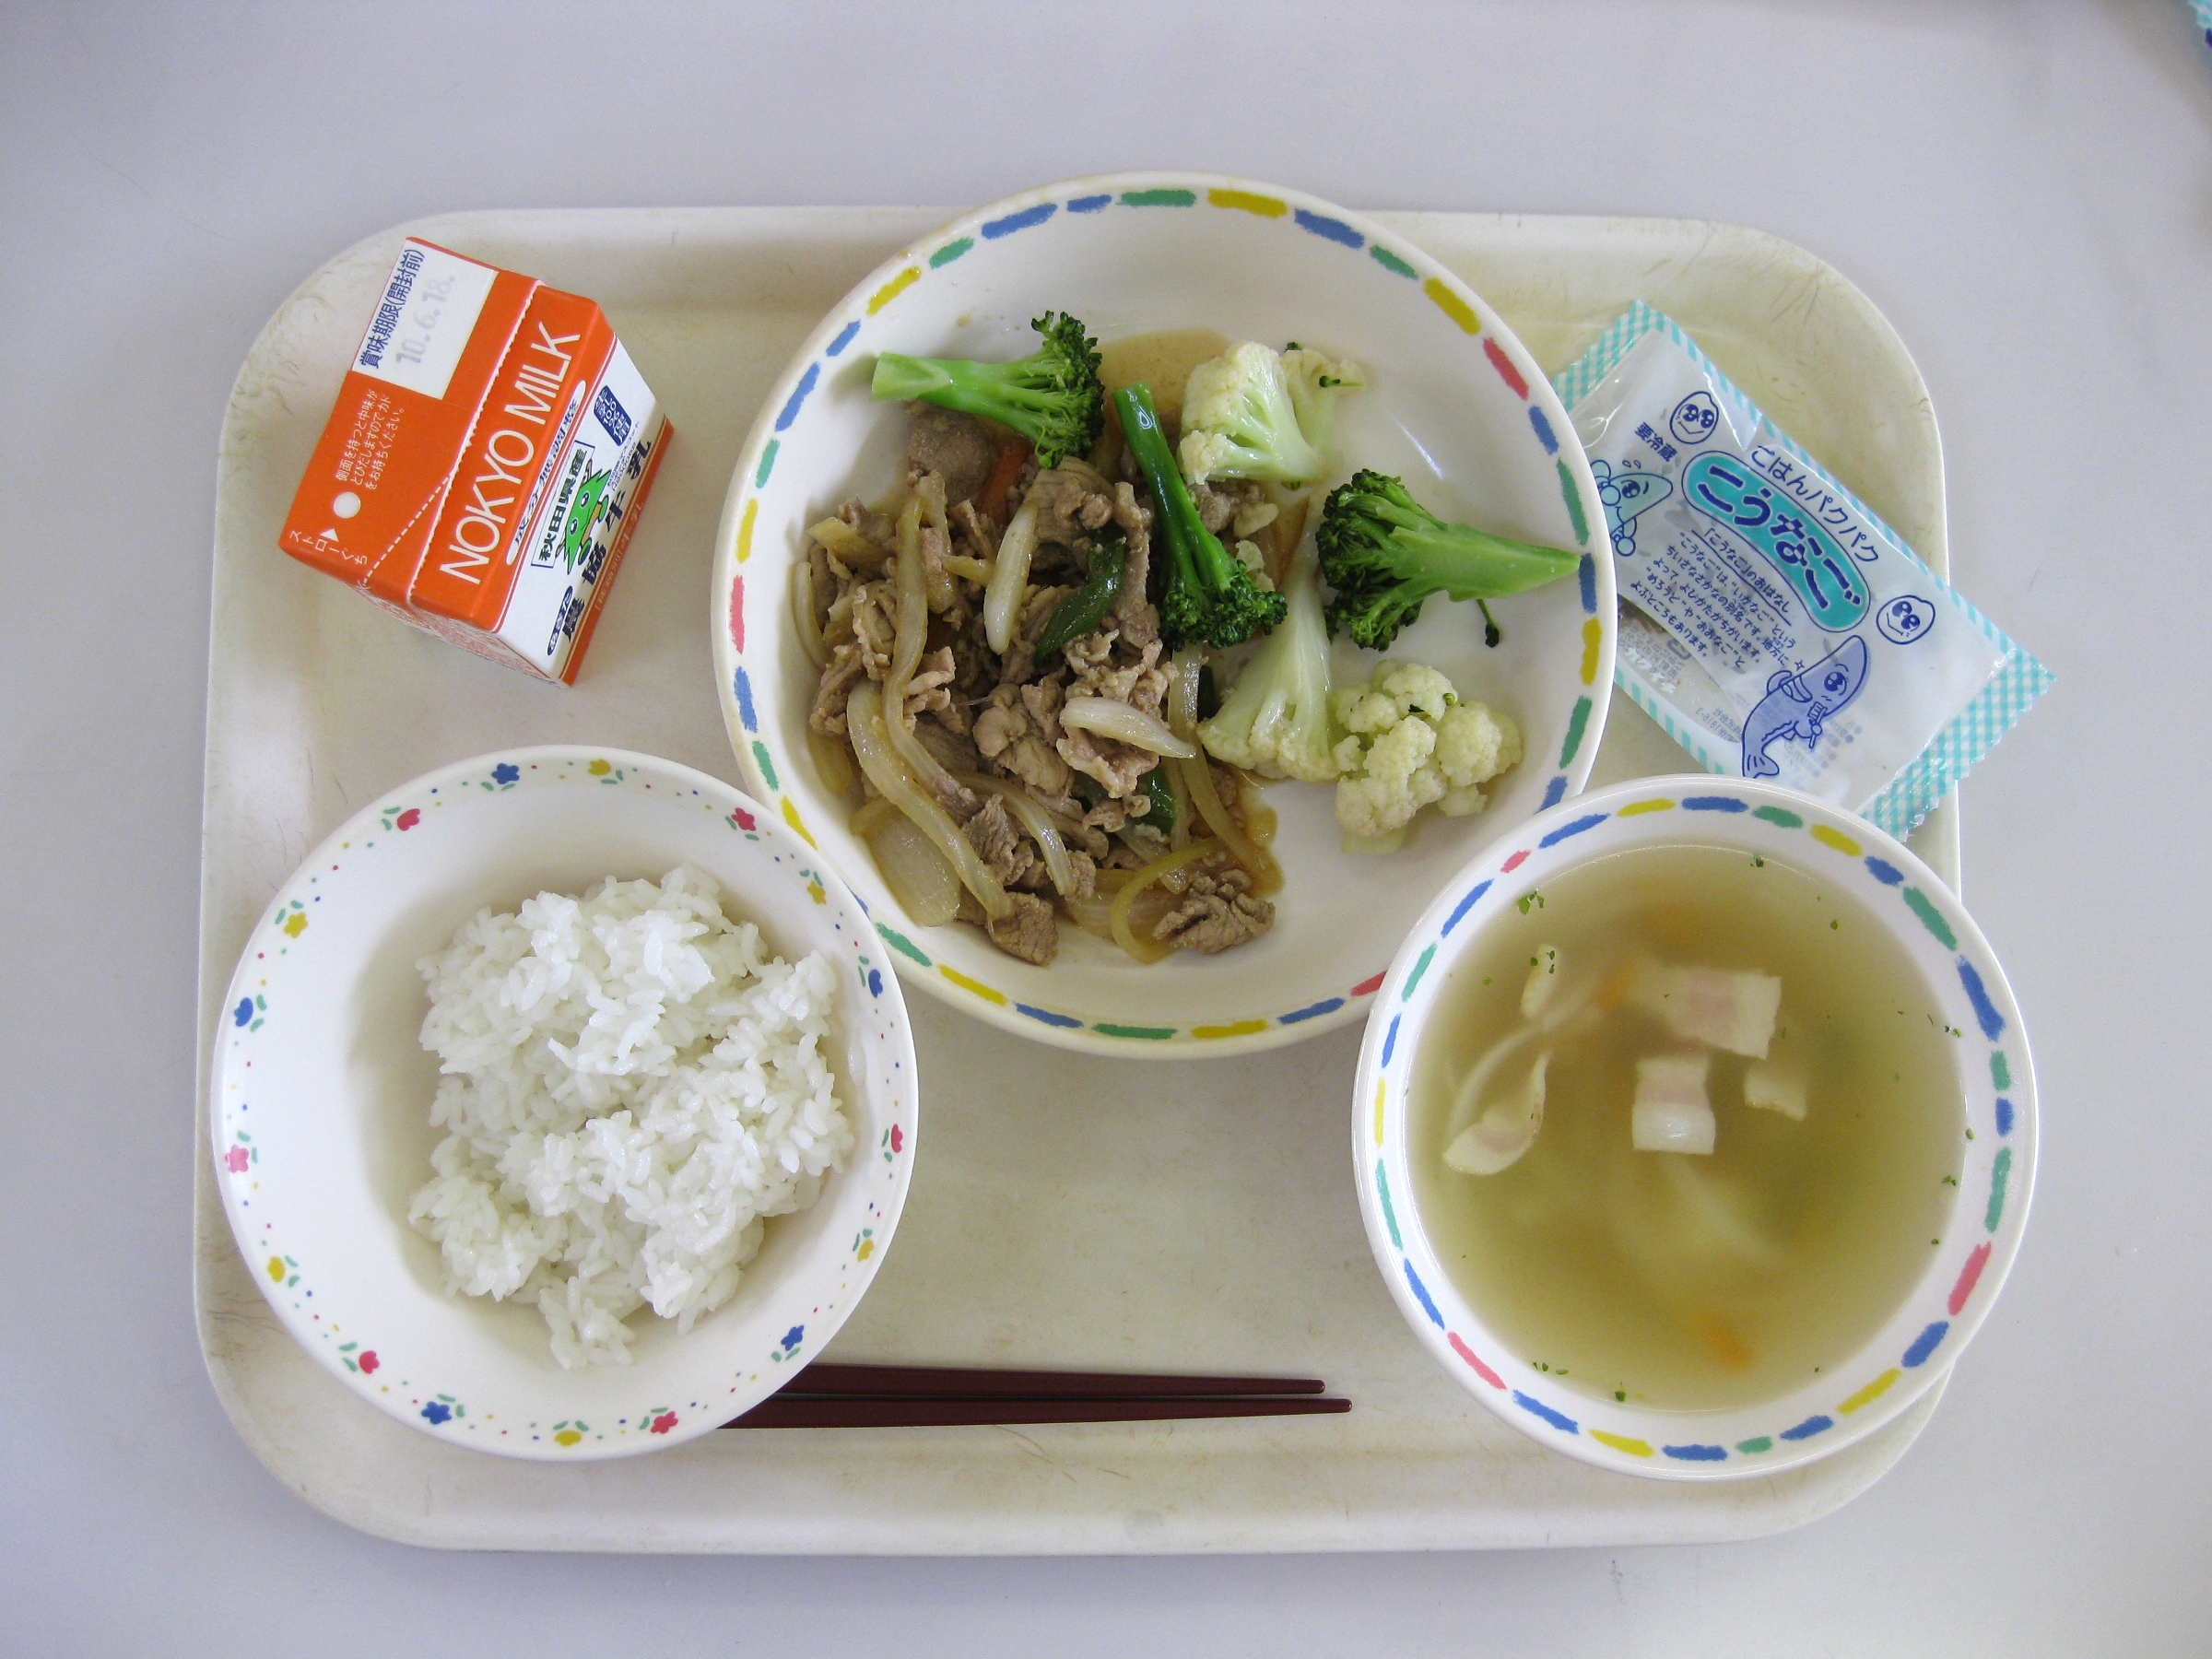 Typical Japanese lunch